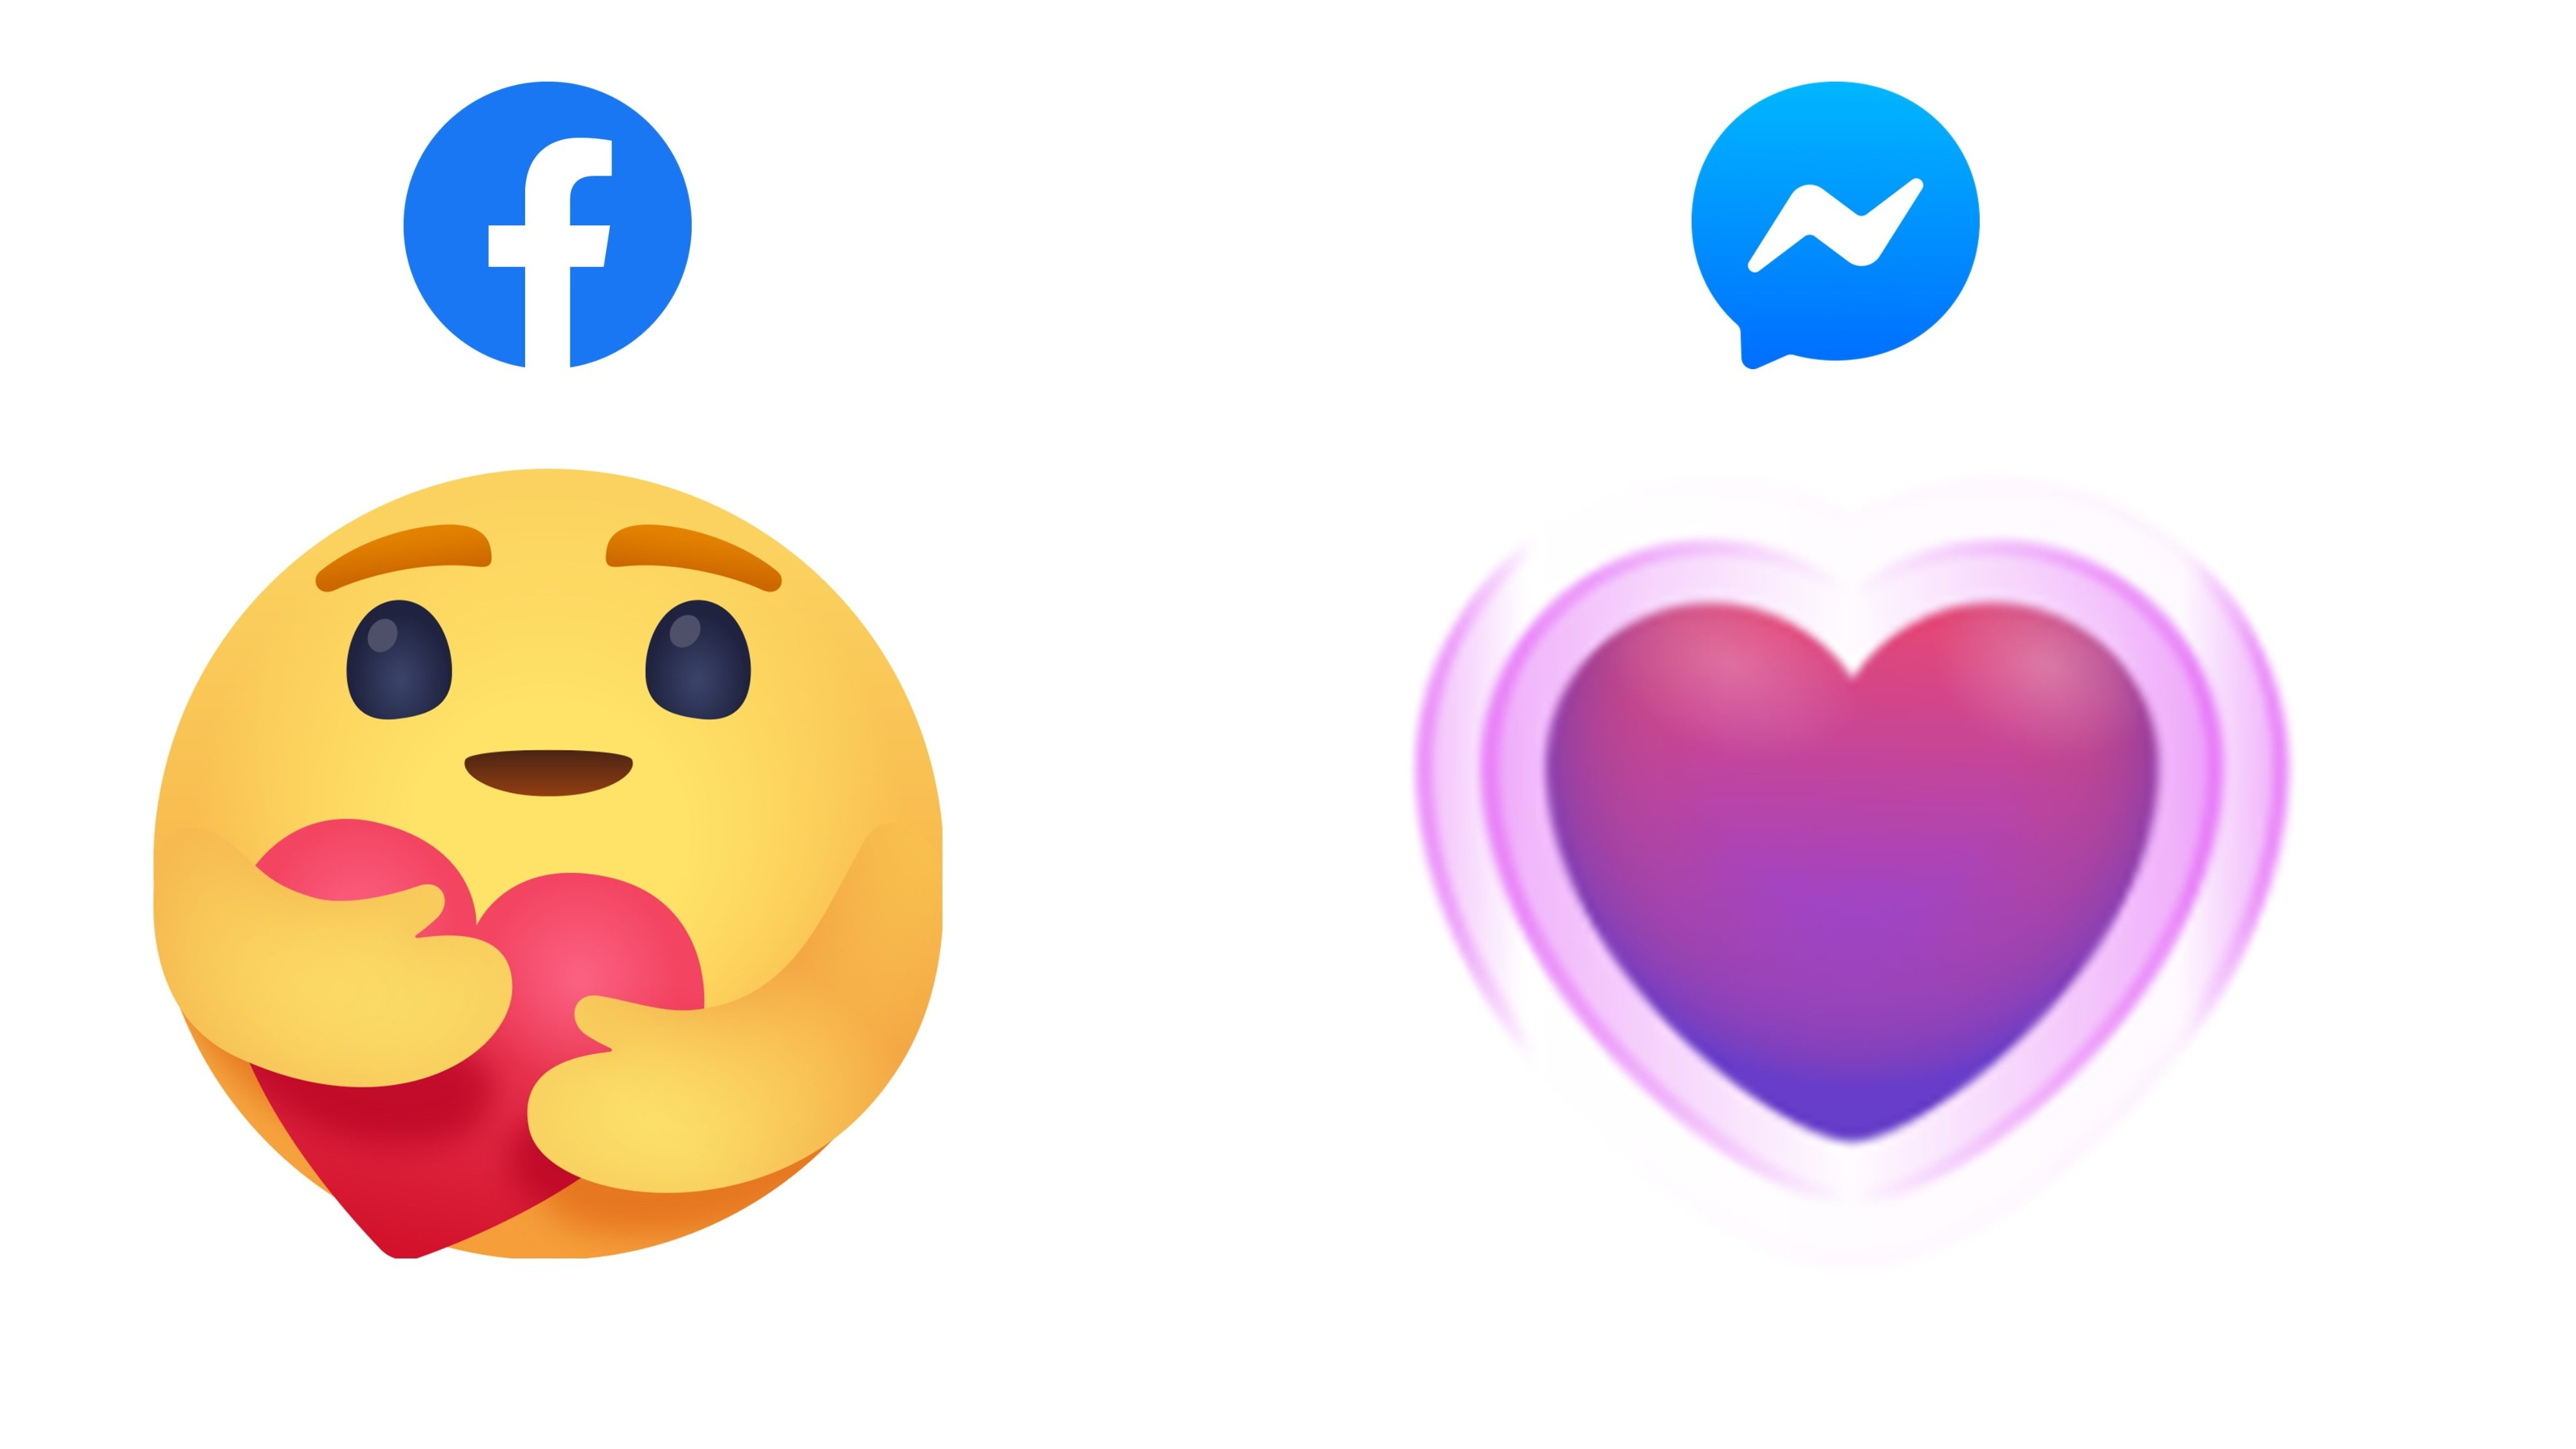 Facebook adds new 'care' emoji reactions on its main app and in ...